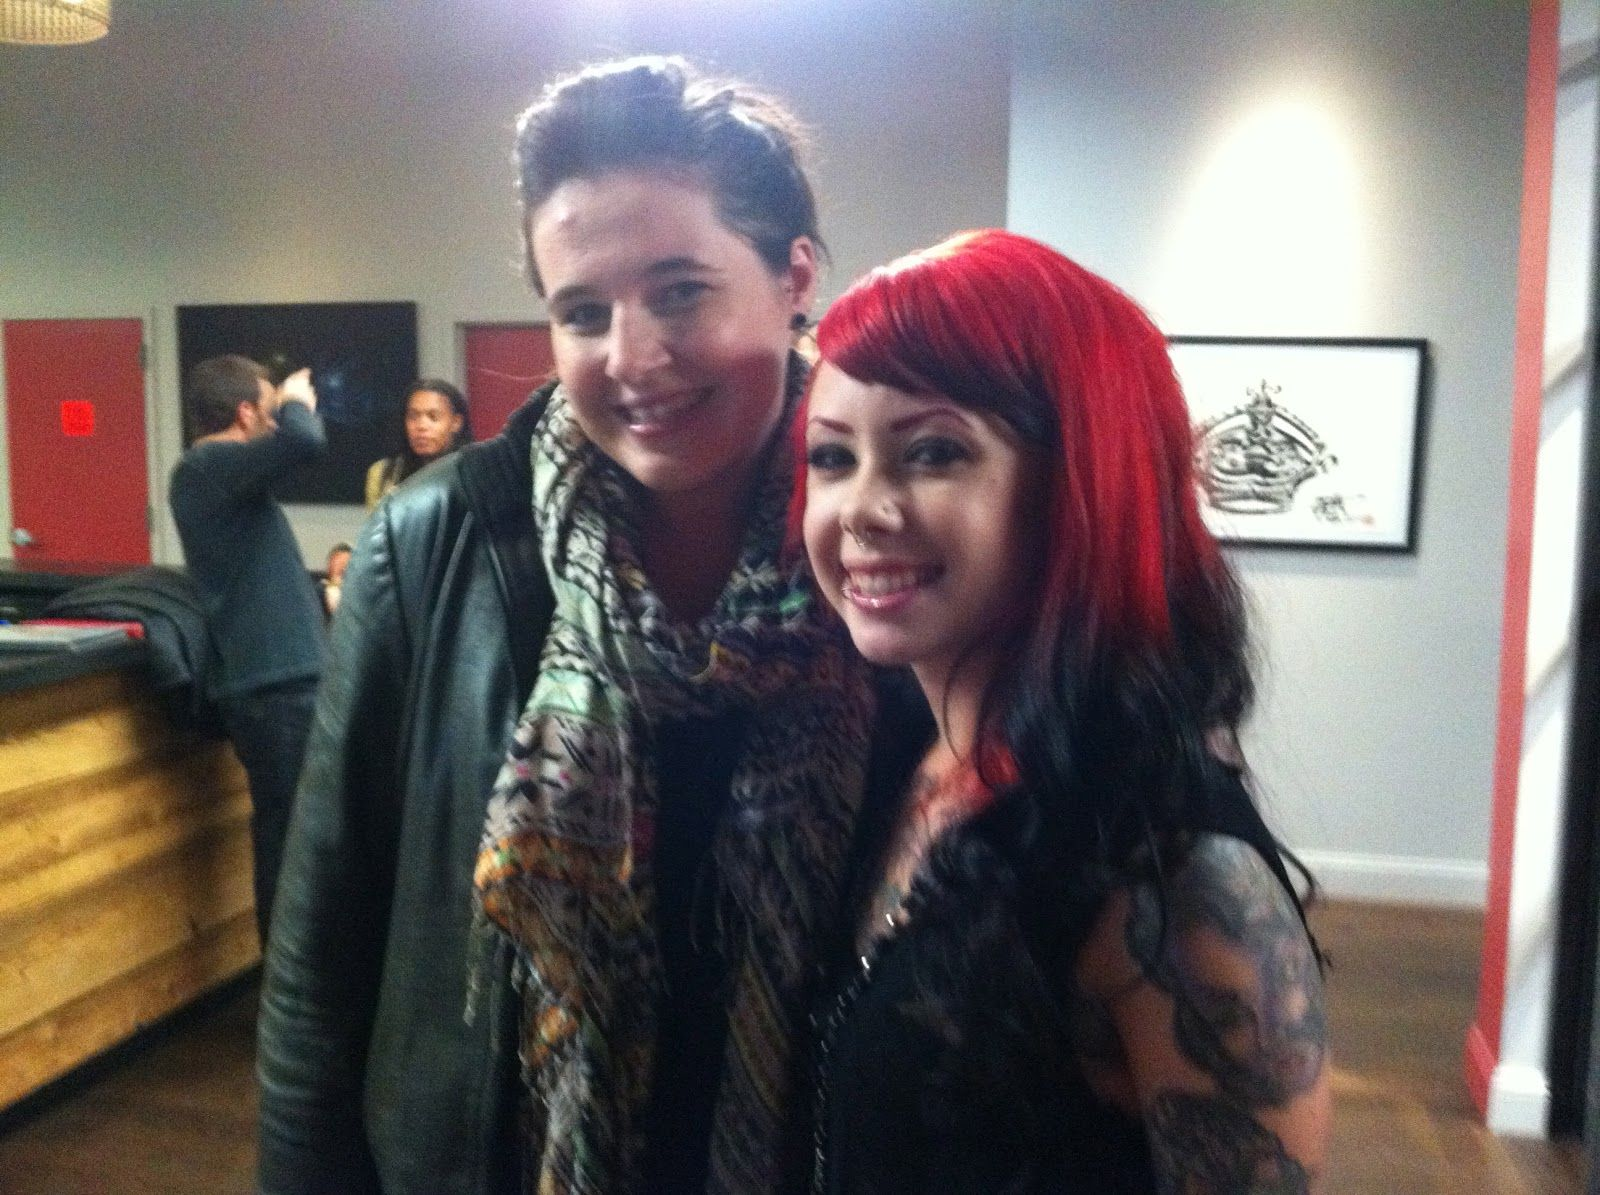 Me & my artist http://www.stellabellahome.com/2012/02/lefty-ny-ink-part-ii.html